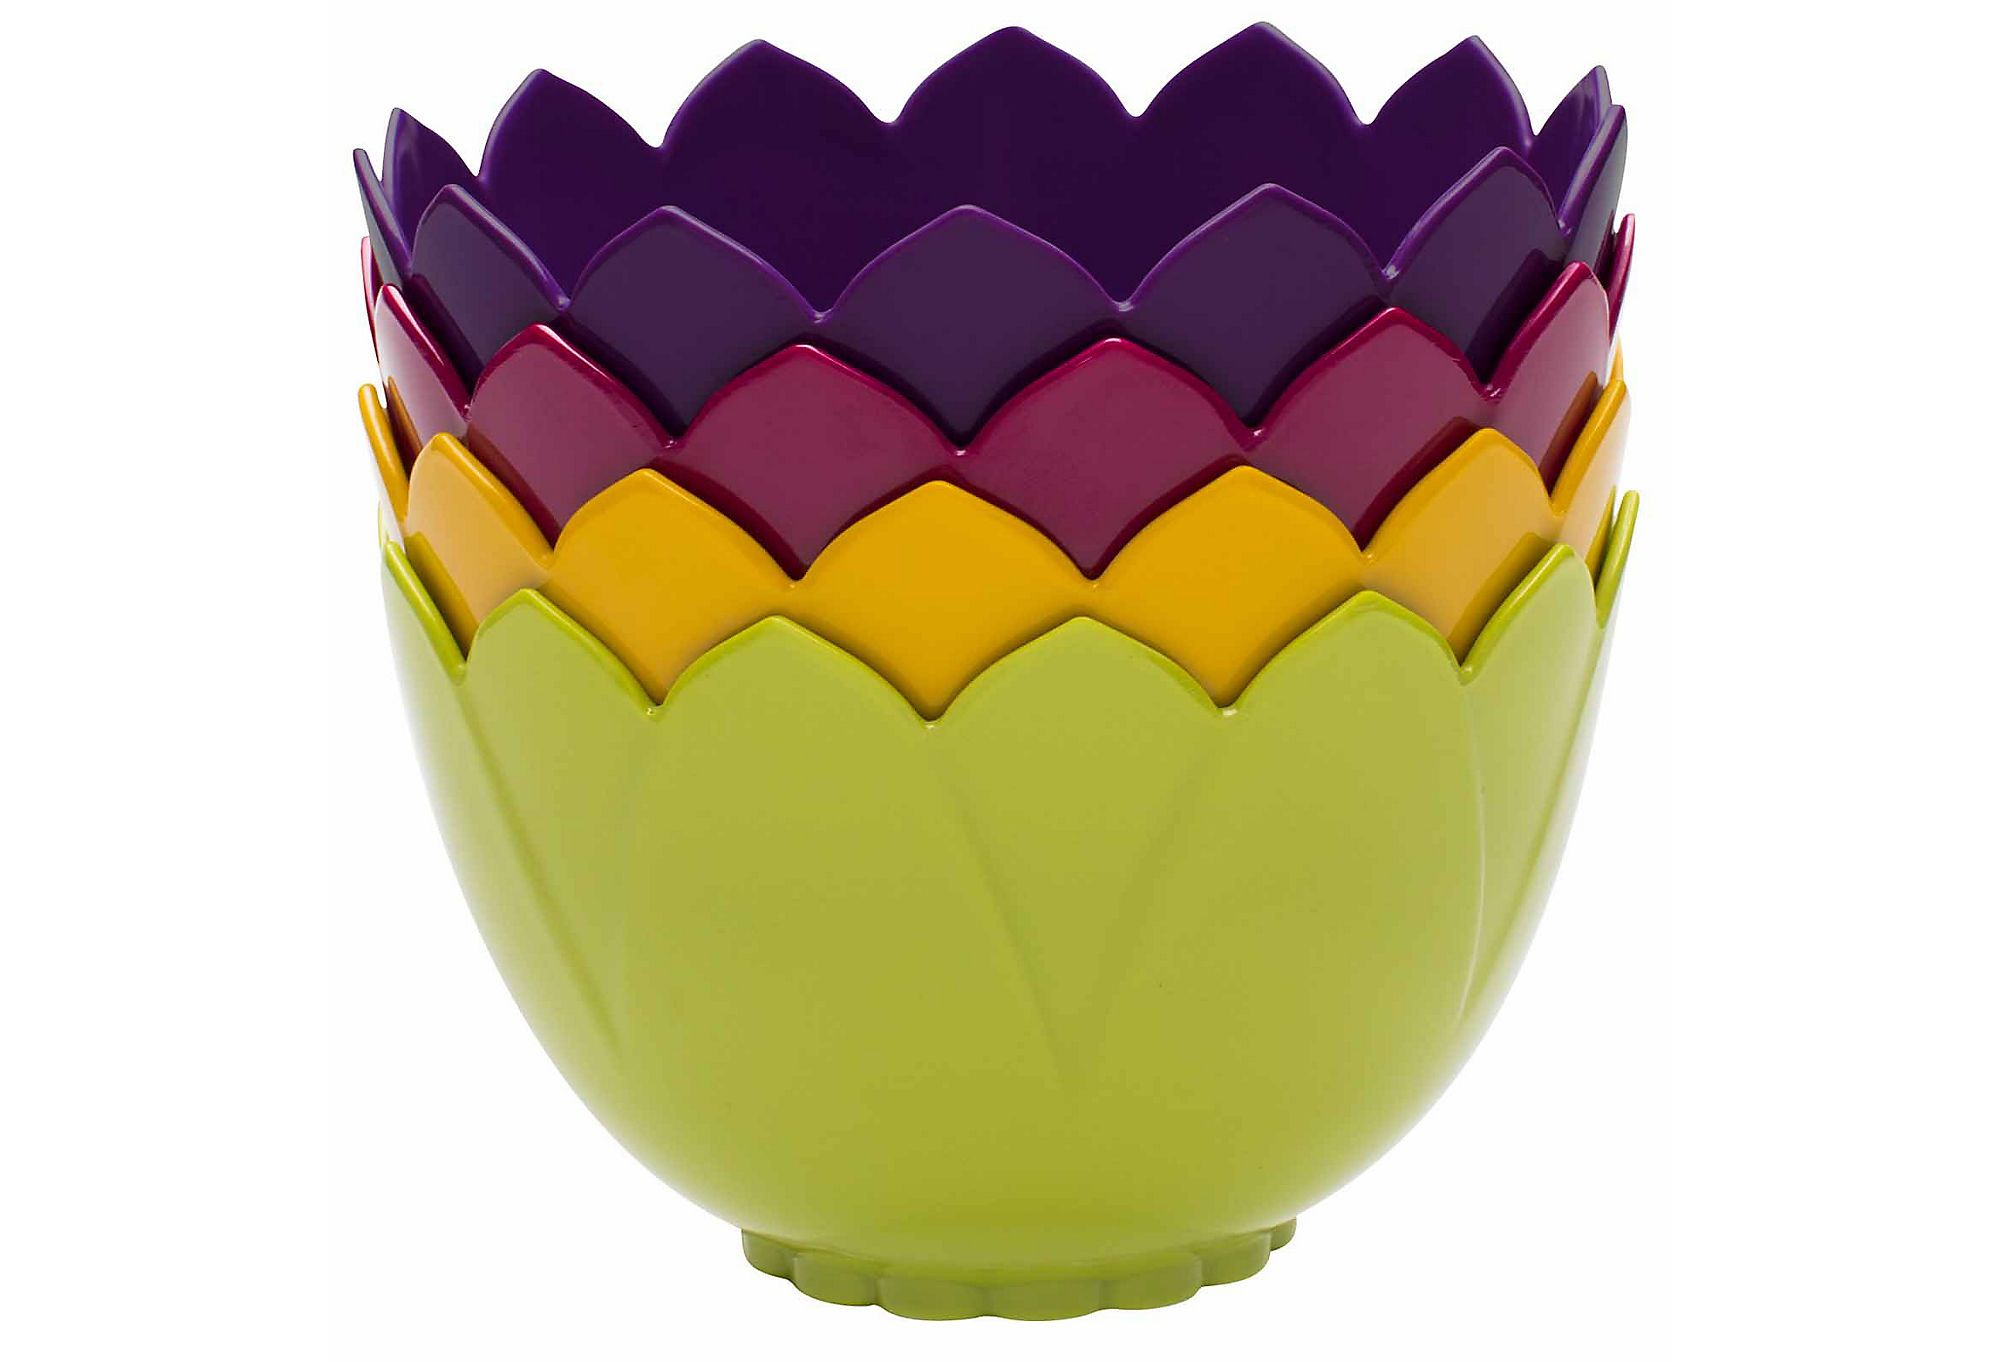 One Kings Lane - A Basket Full of Treats - S/4 Assorted Flora Bowls, 19 Oz